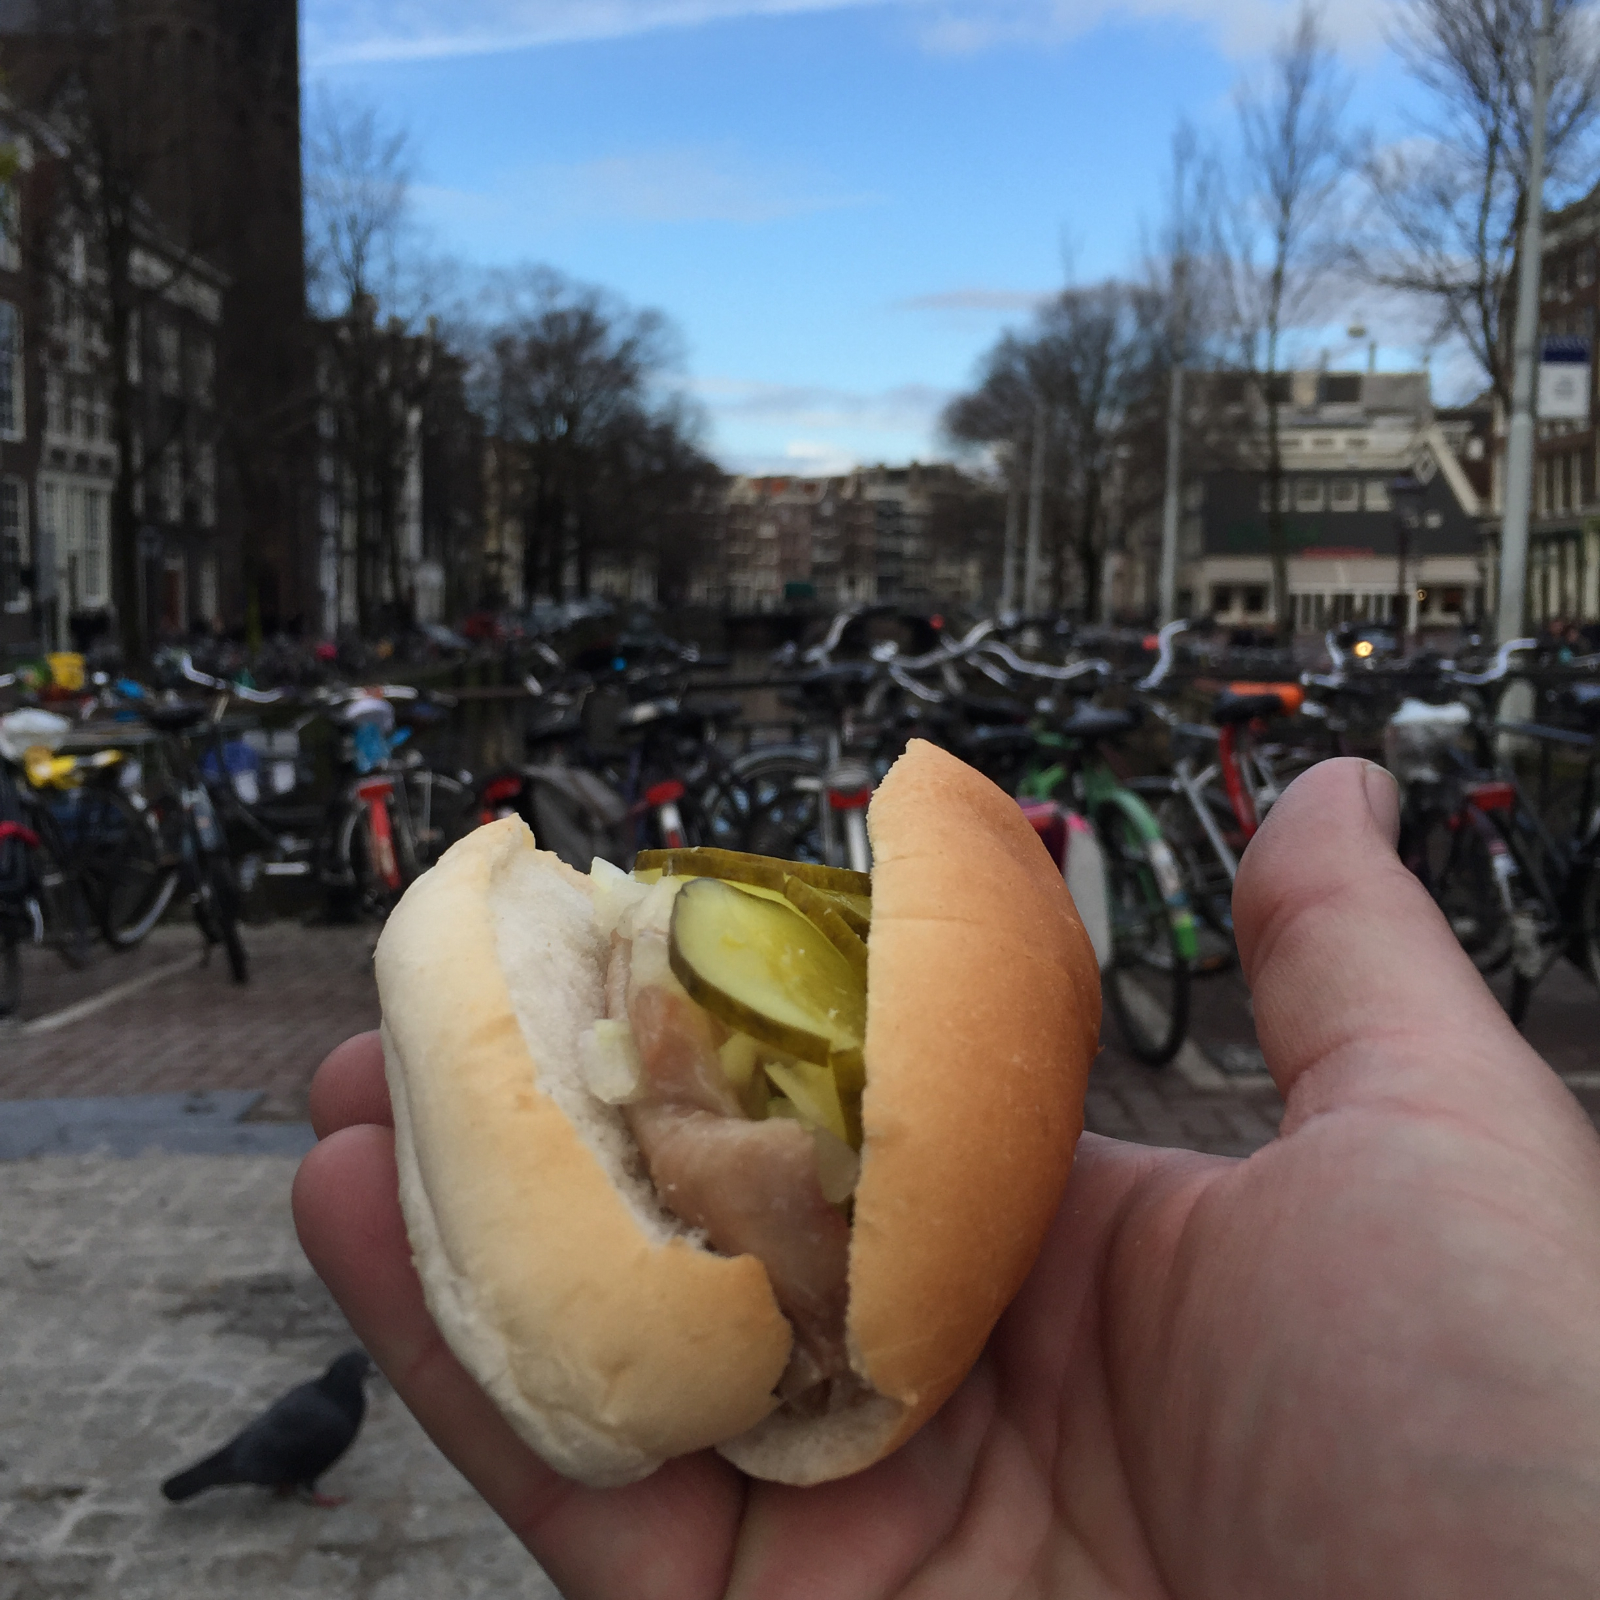 Herring sandwich before even getting to apartment!